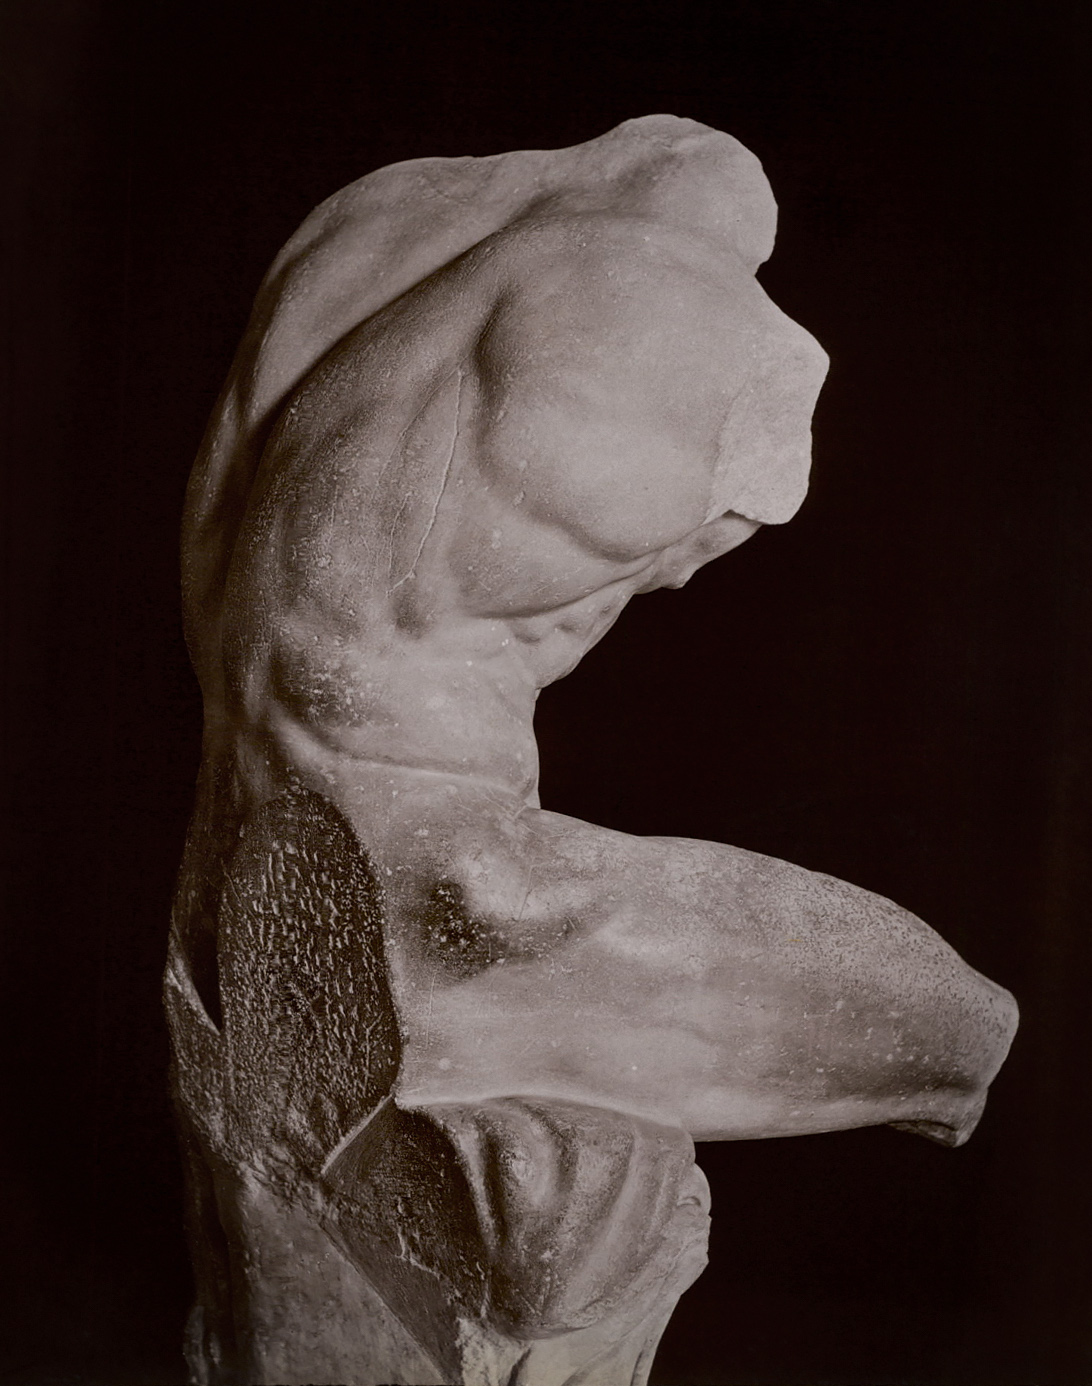 Torso, called Belvedere. Marble. Work by Apollonios Athenian, son of Nestor. Rome, Vatican Museums, Pius-Clementine Museum, Room of the Muses, 26